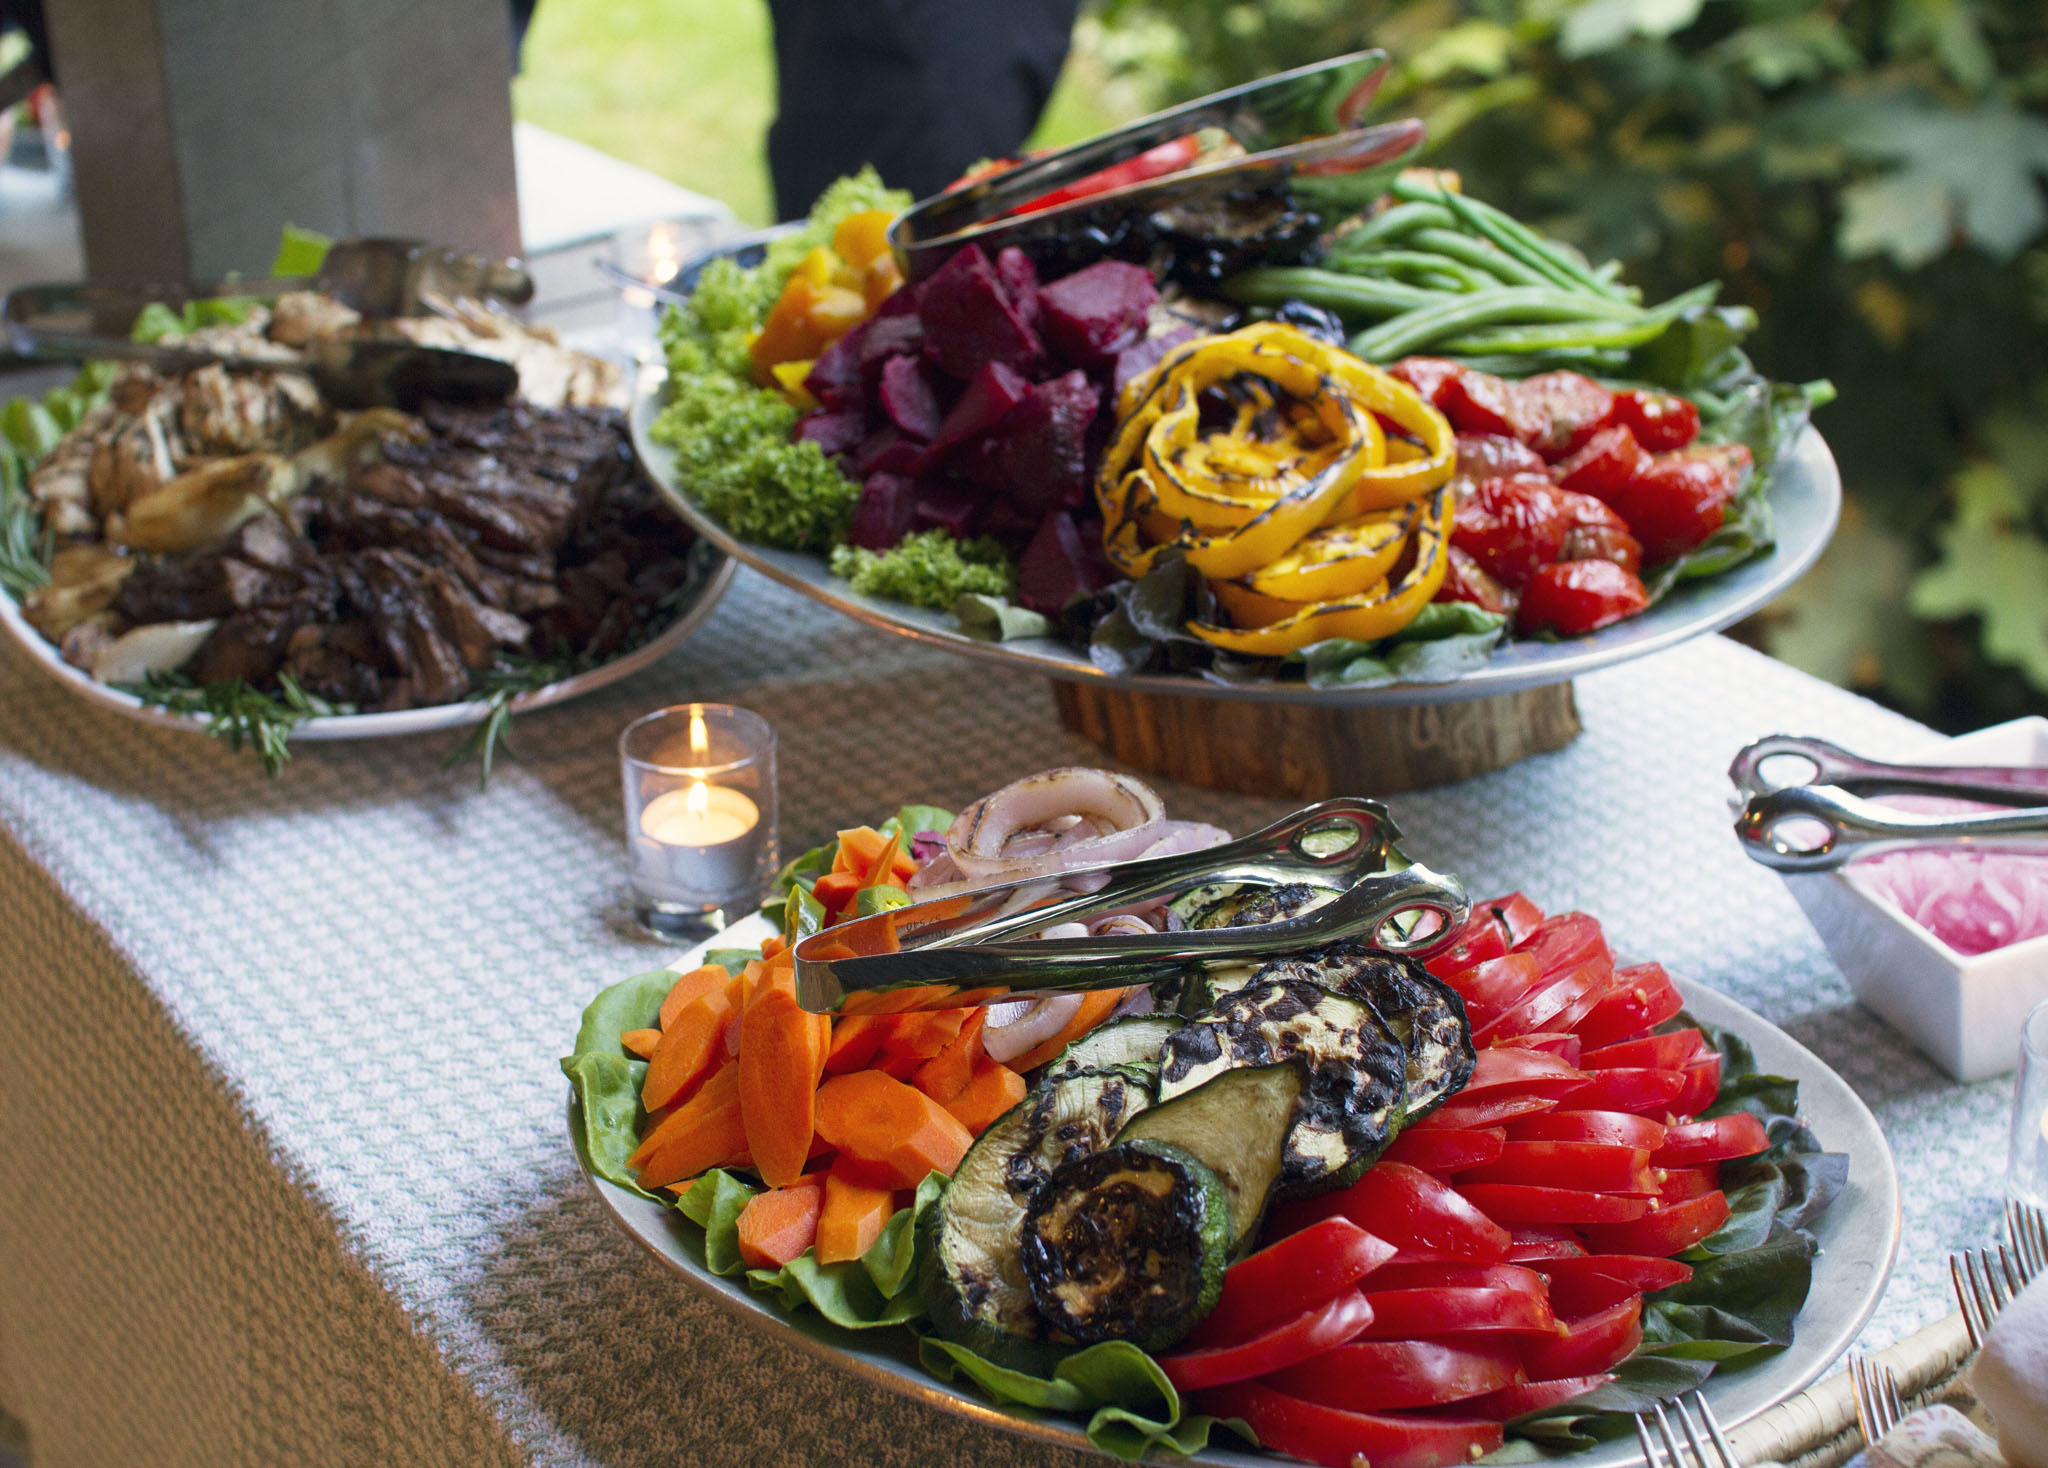 Picture of Nicoise Salad 67 Biltmore Downtown Eatery and Catering in Asheville, NC